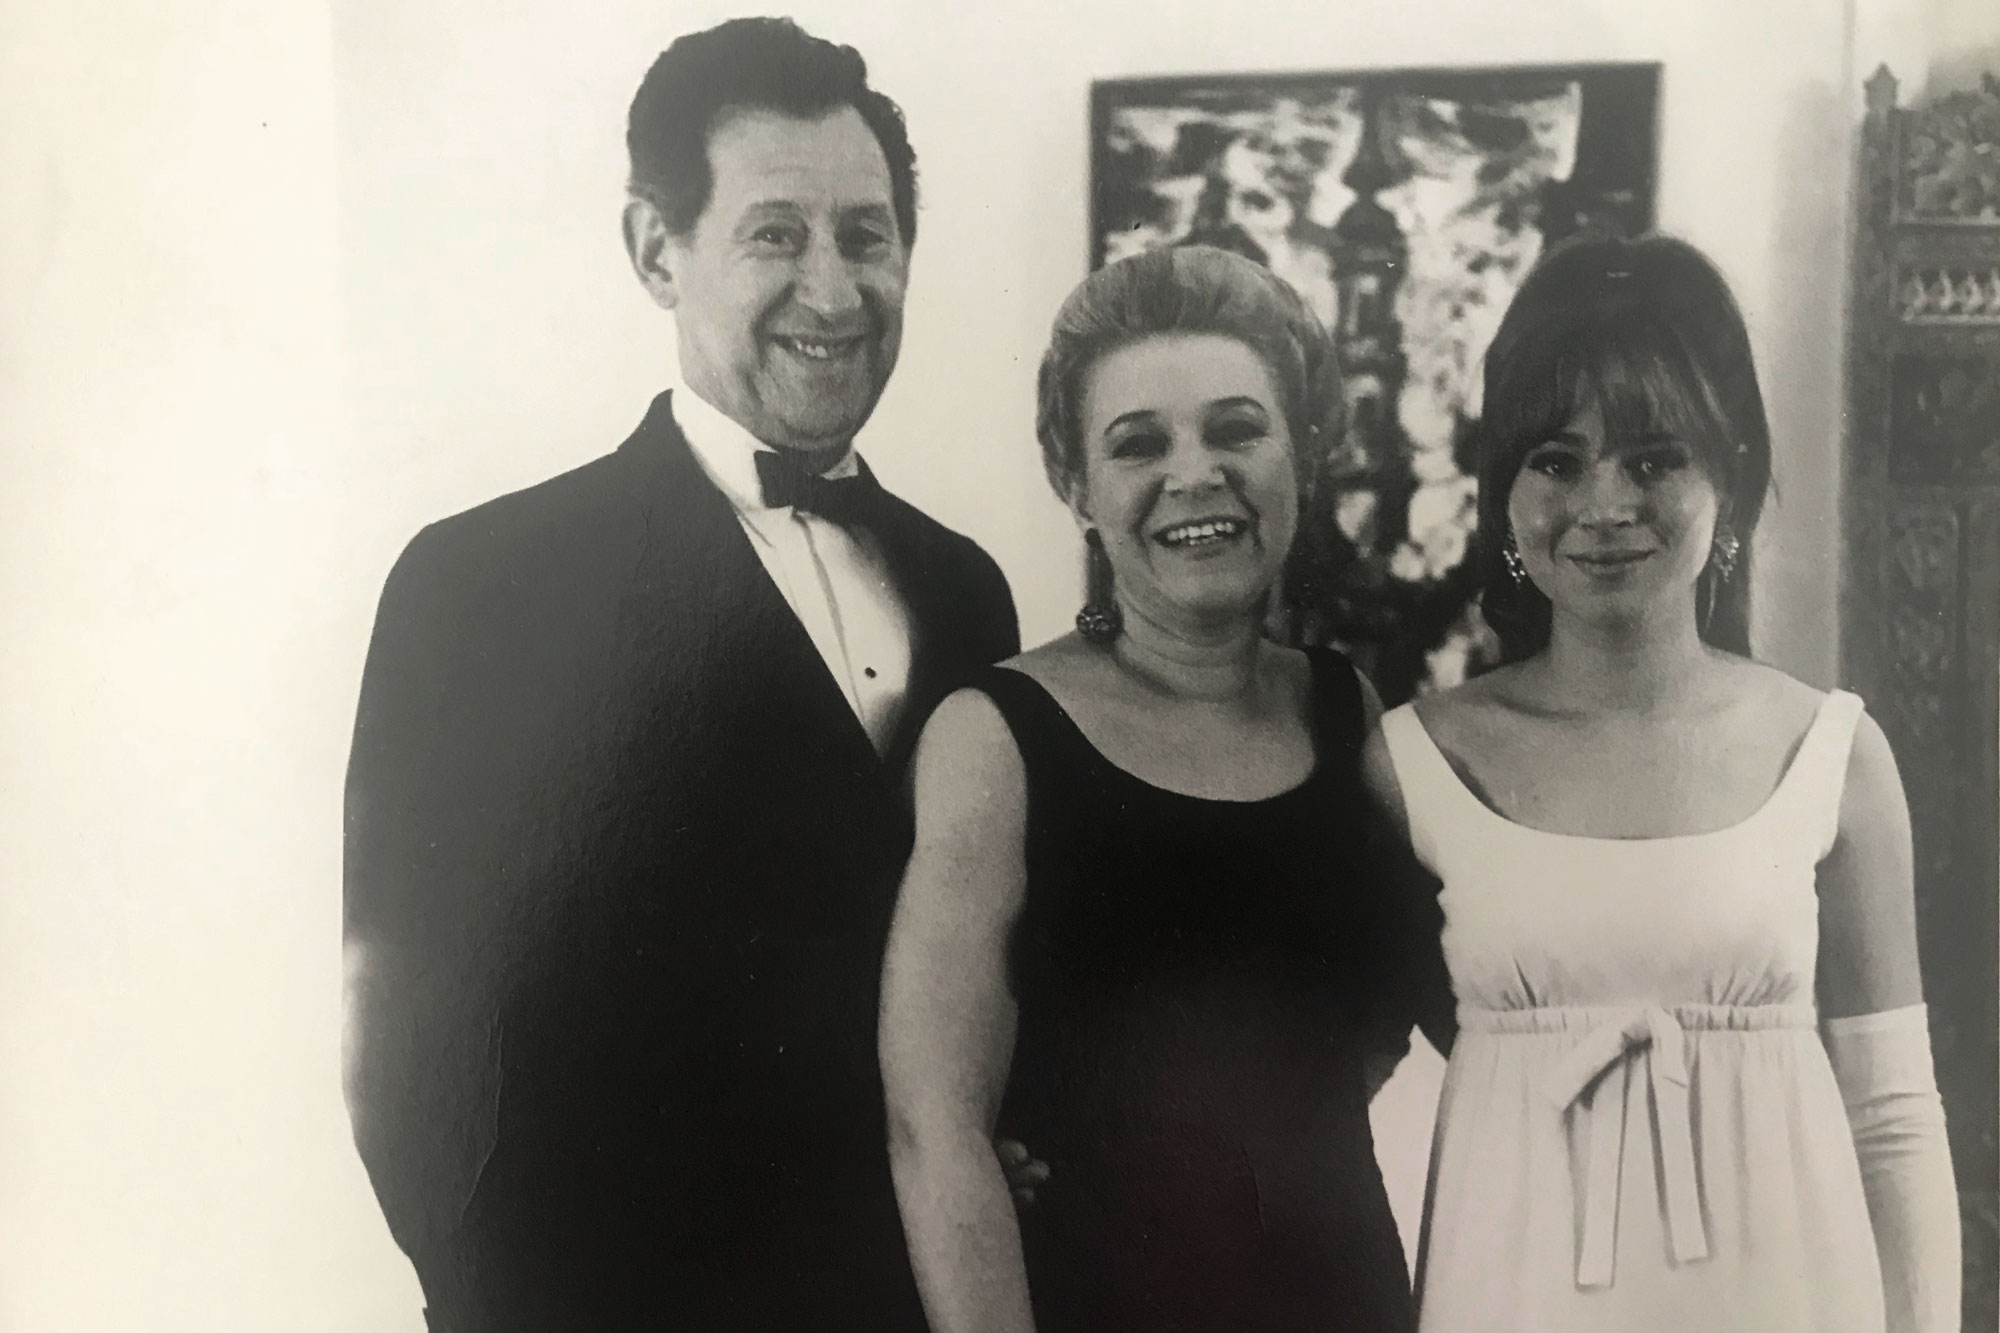 <p>Lisa Gilford (far right) with her parents,Madeline Lee andJack Gilford. Both Madeline and Jack were actors who were blacklisted for being active in left-wing and labor causes.</p>